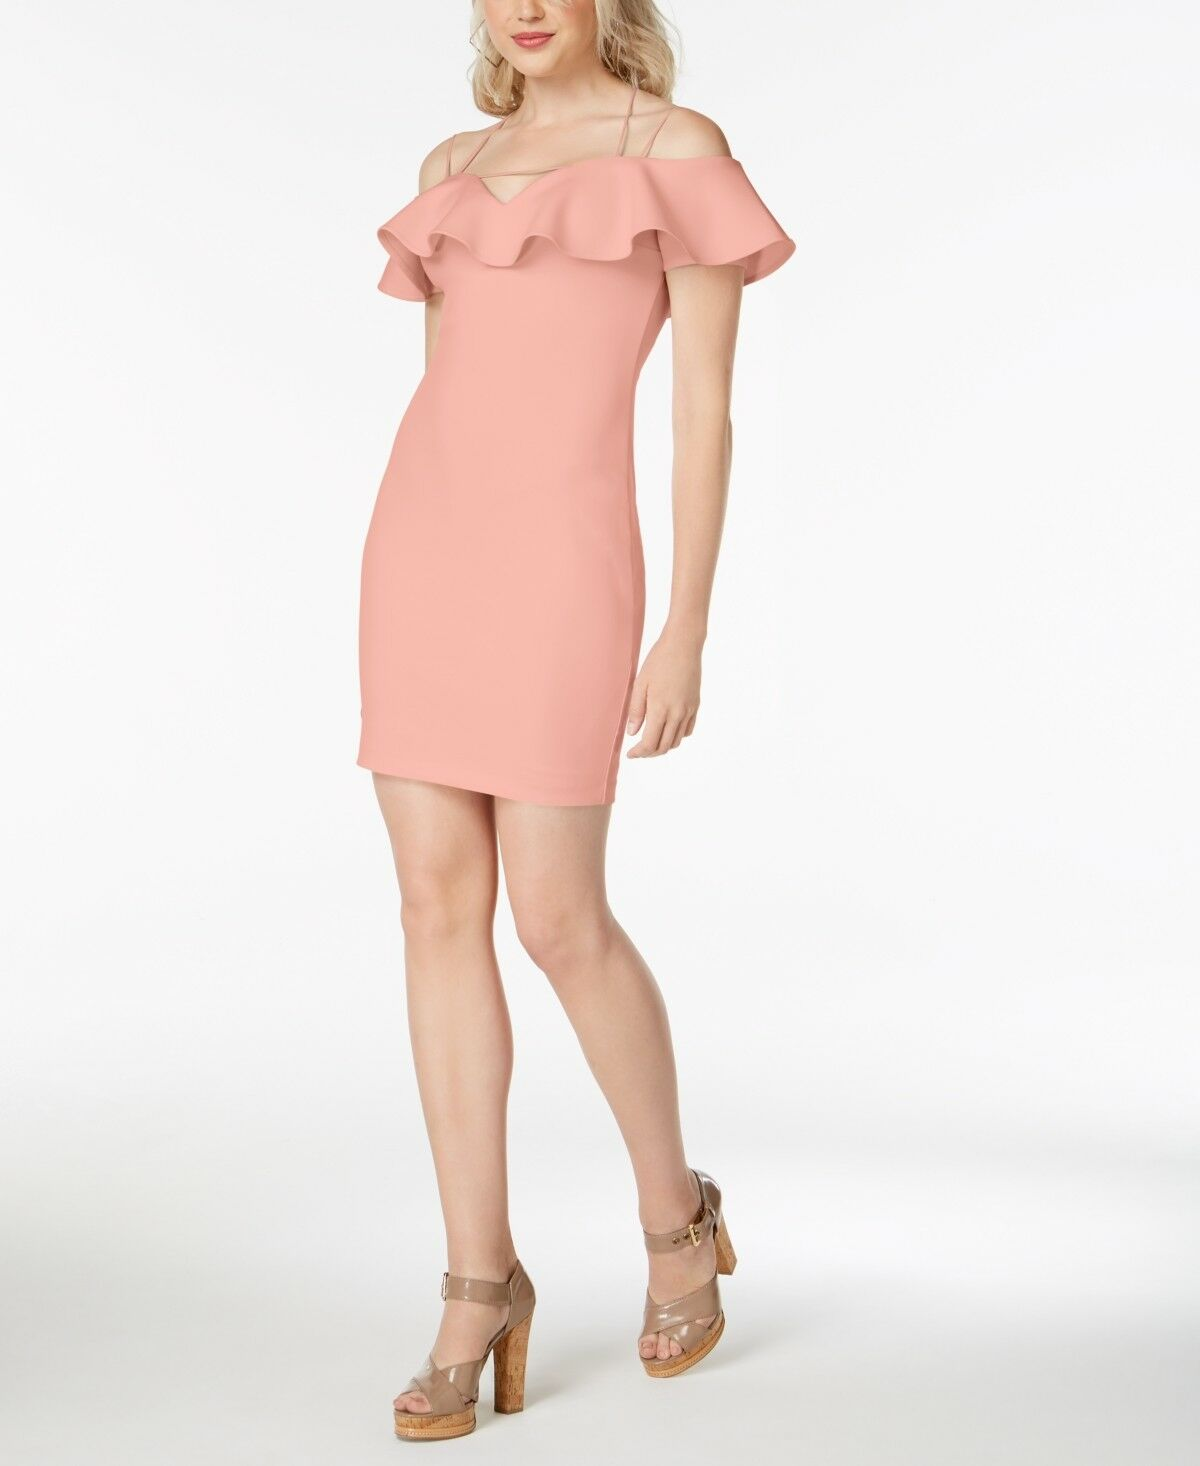 NWT  GUESS WOMEN'S PINK RUFFLED OFF-THE-SHOULDER BODYCON PARTY DRESS SIZE S